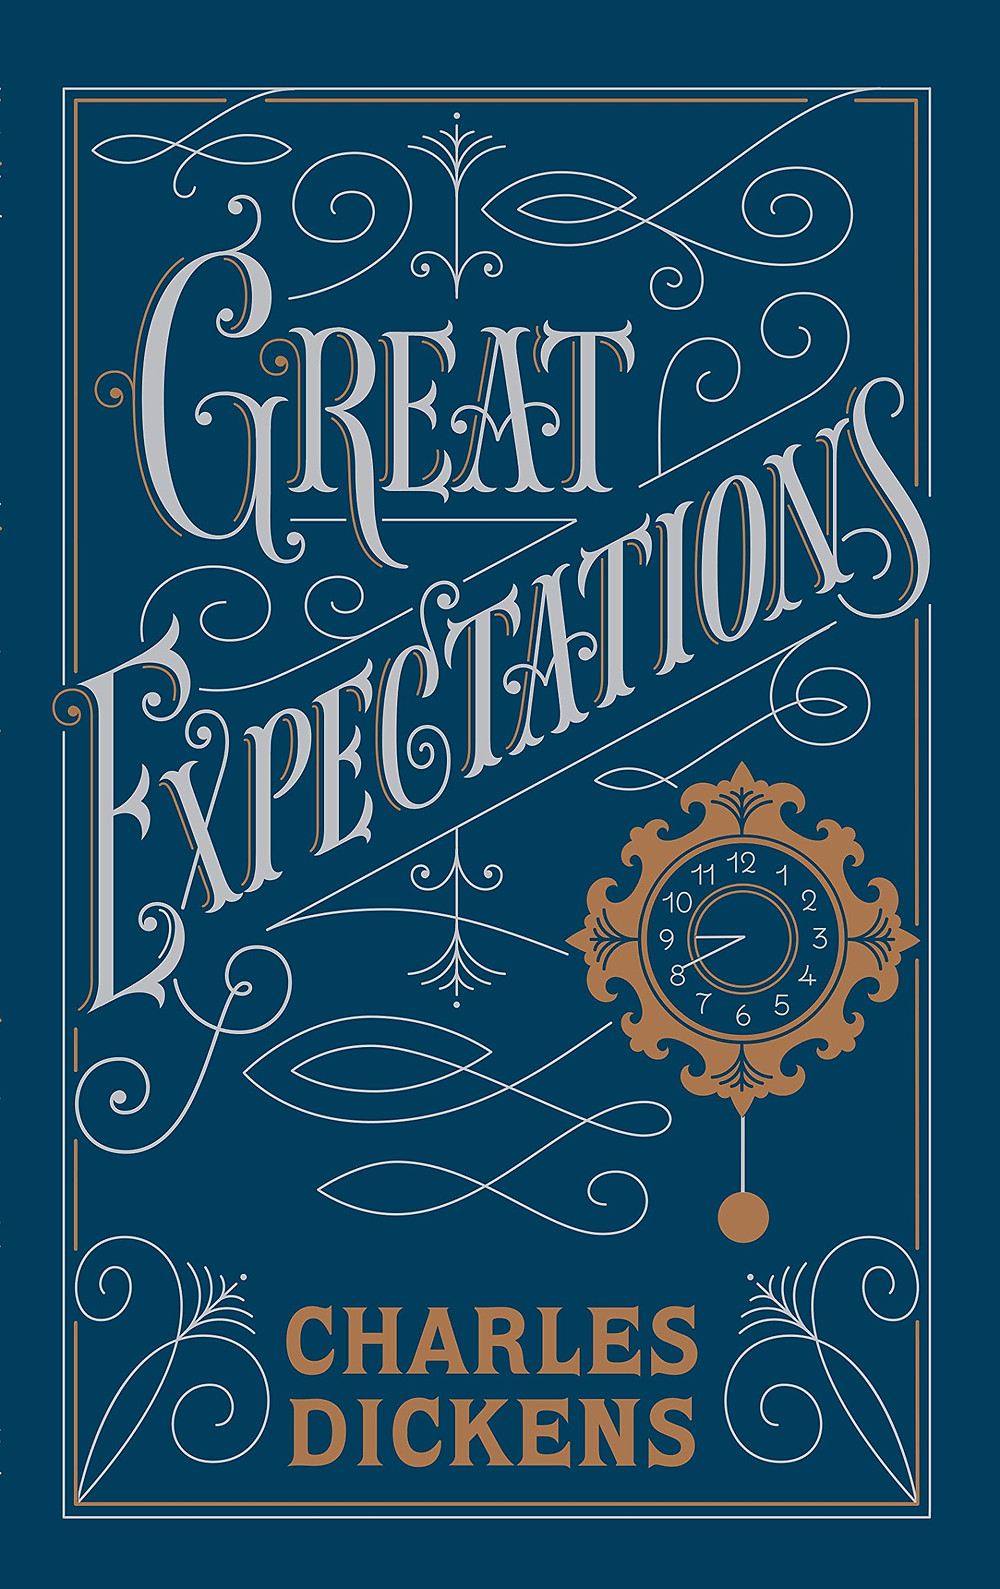 Great Expectations - Charles Dickens Book Cover